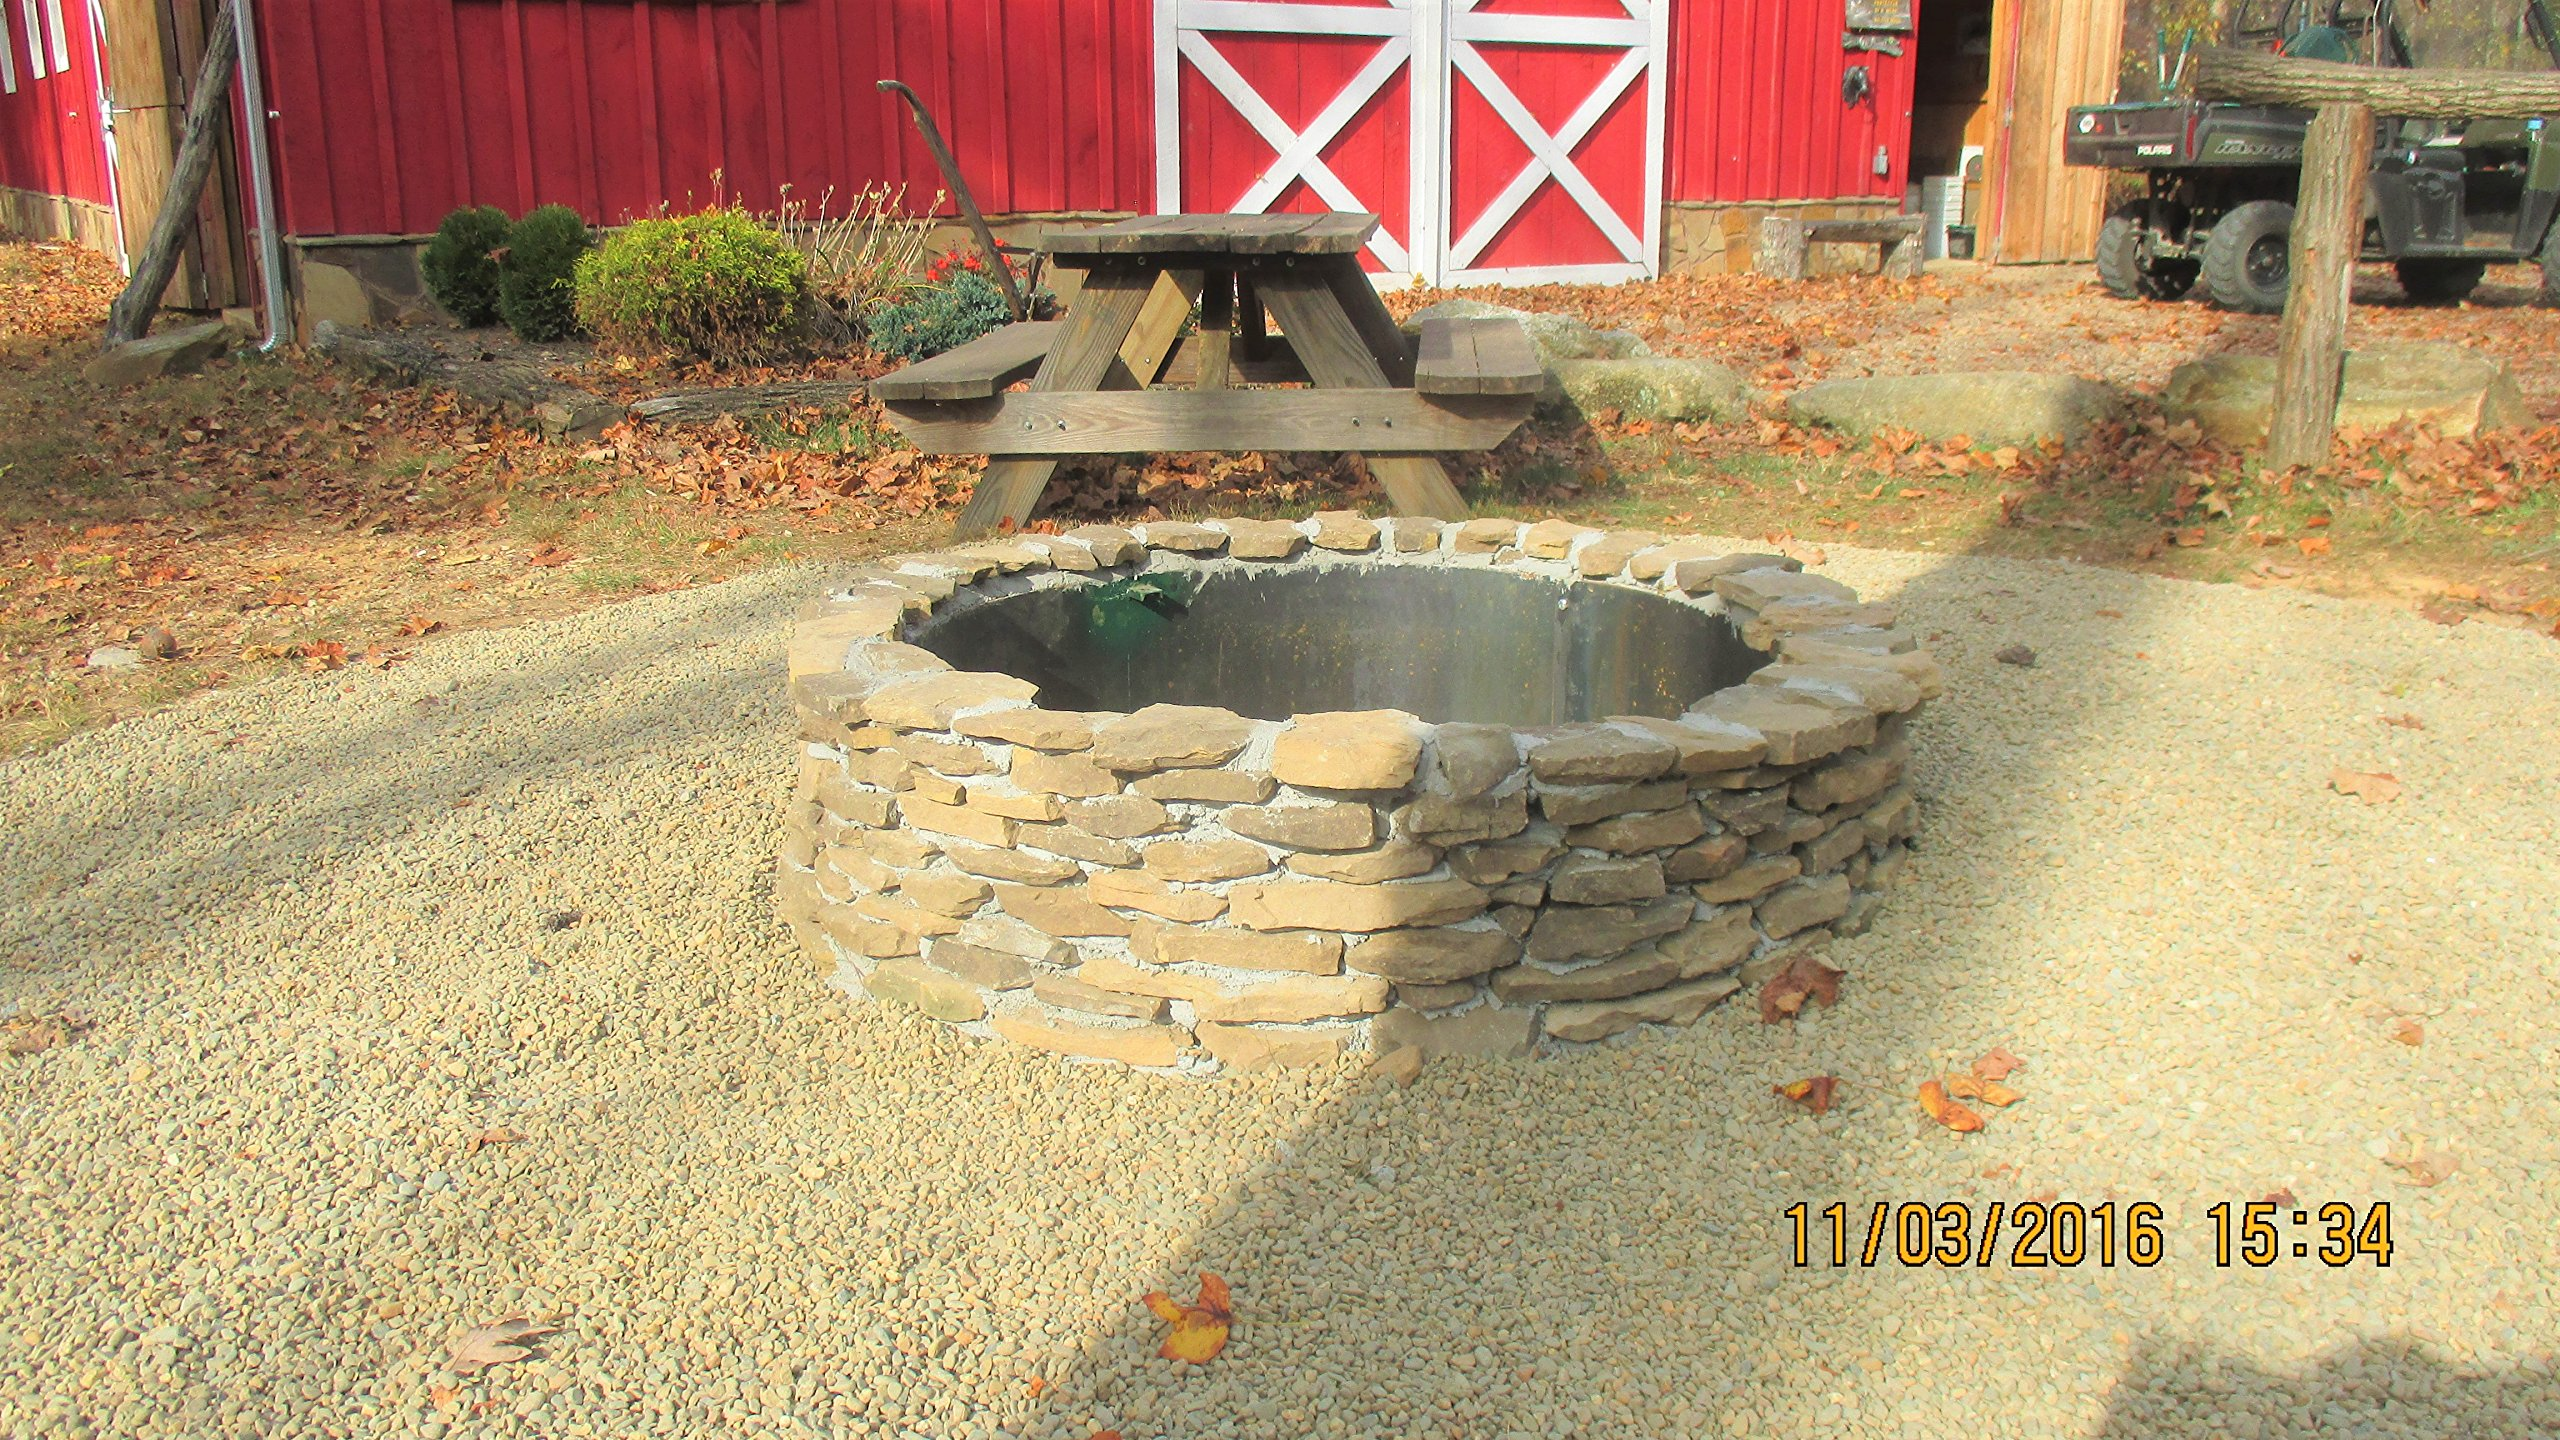 Steel Fire Pit Ring Liner Metal Insert 16'' Deep x 45'' Deep by Higley Stainless Steel Metal Fire Pits